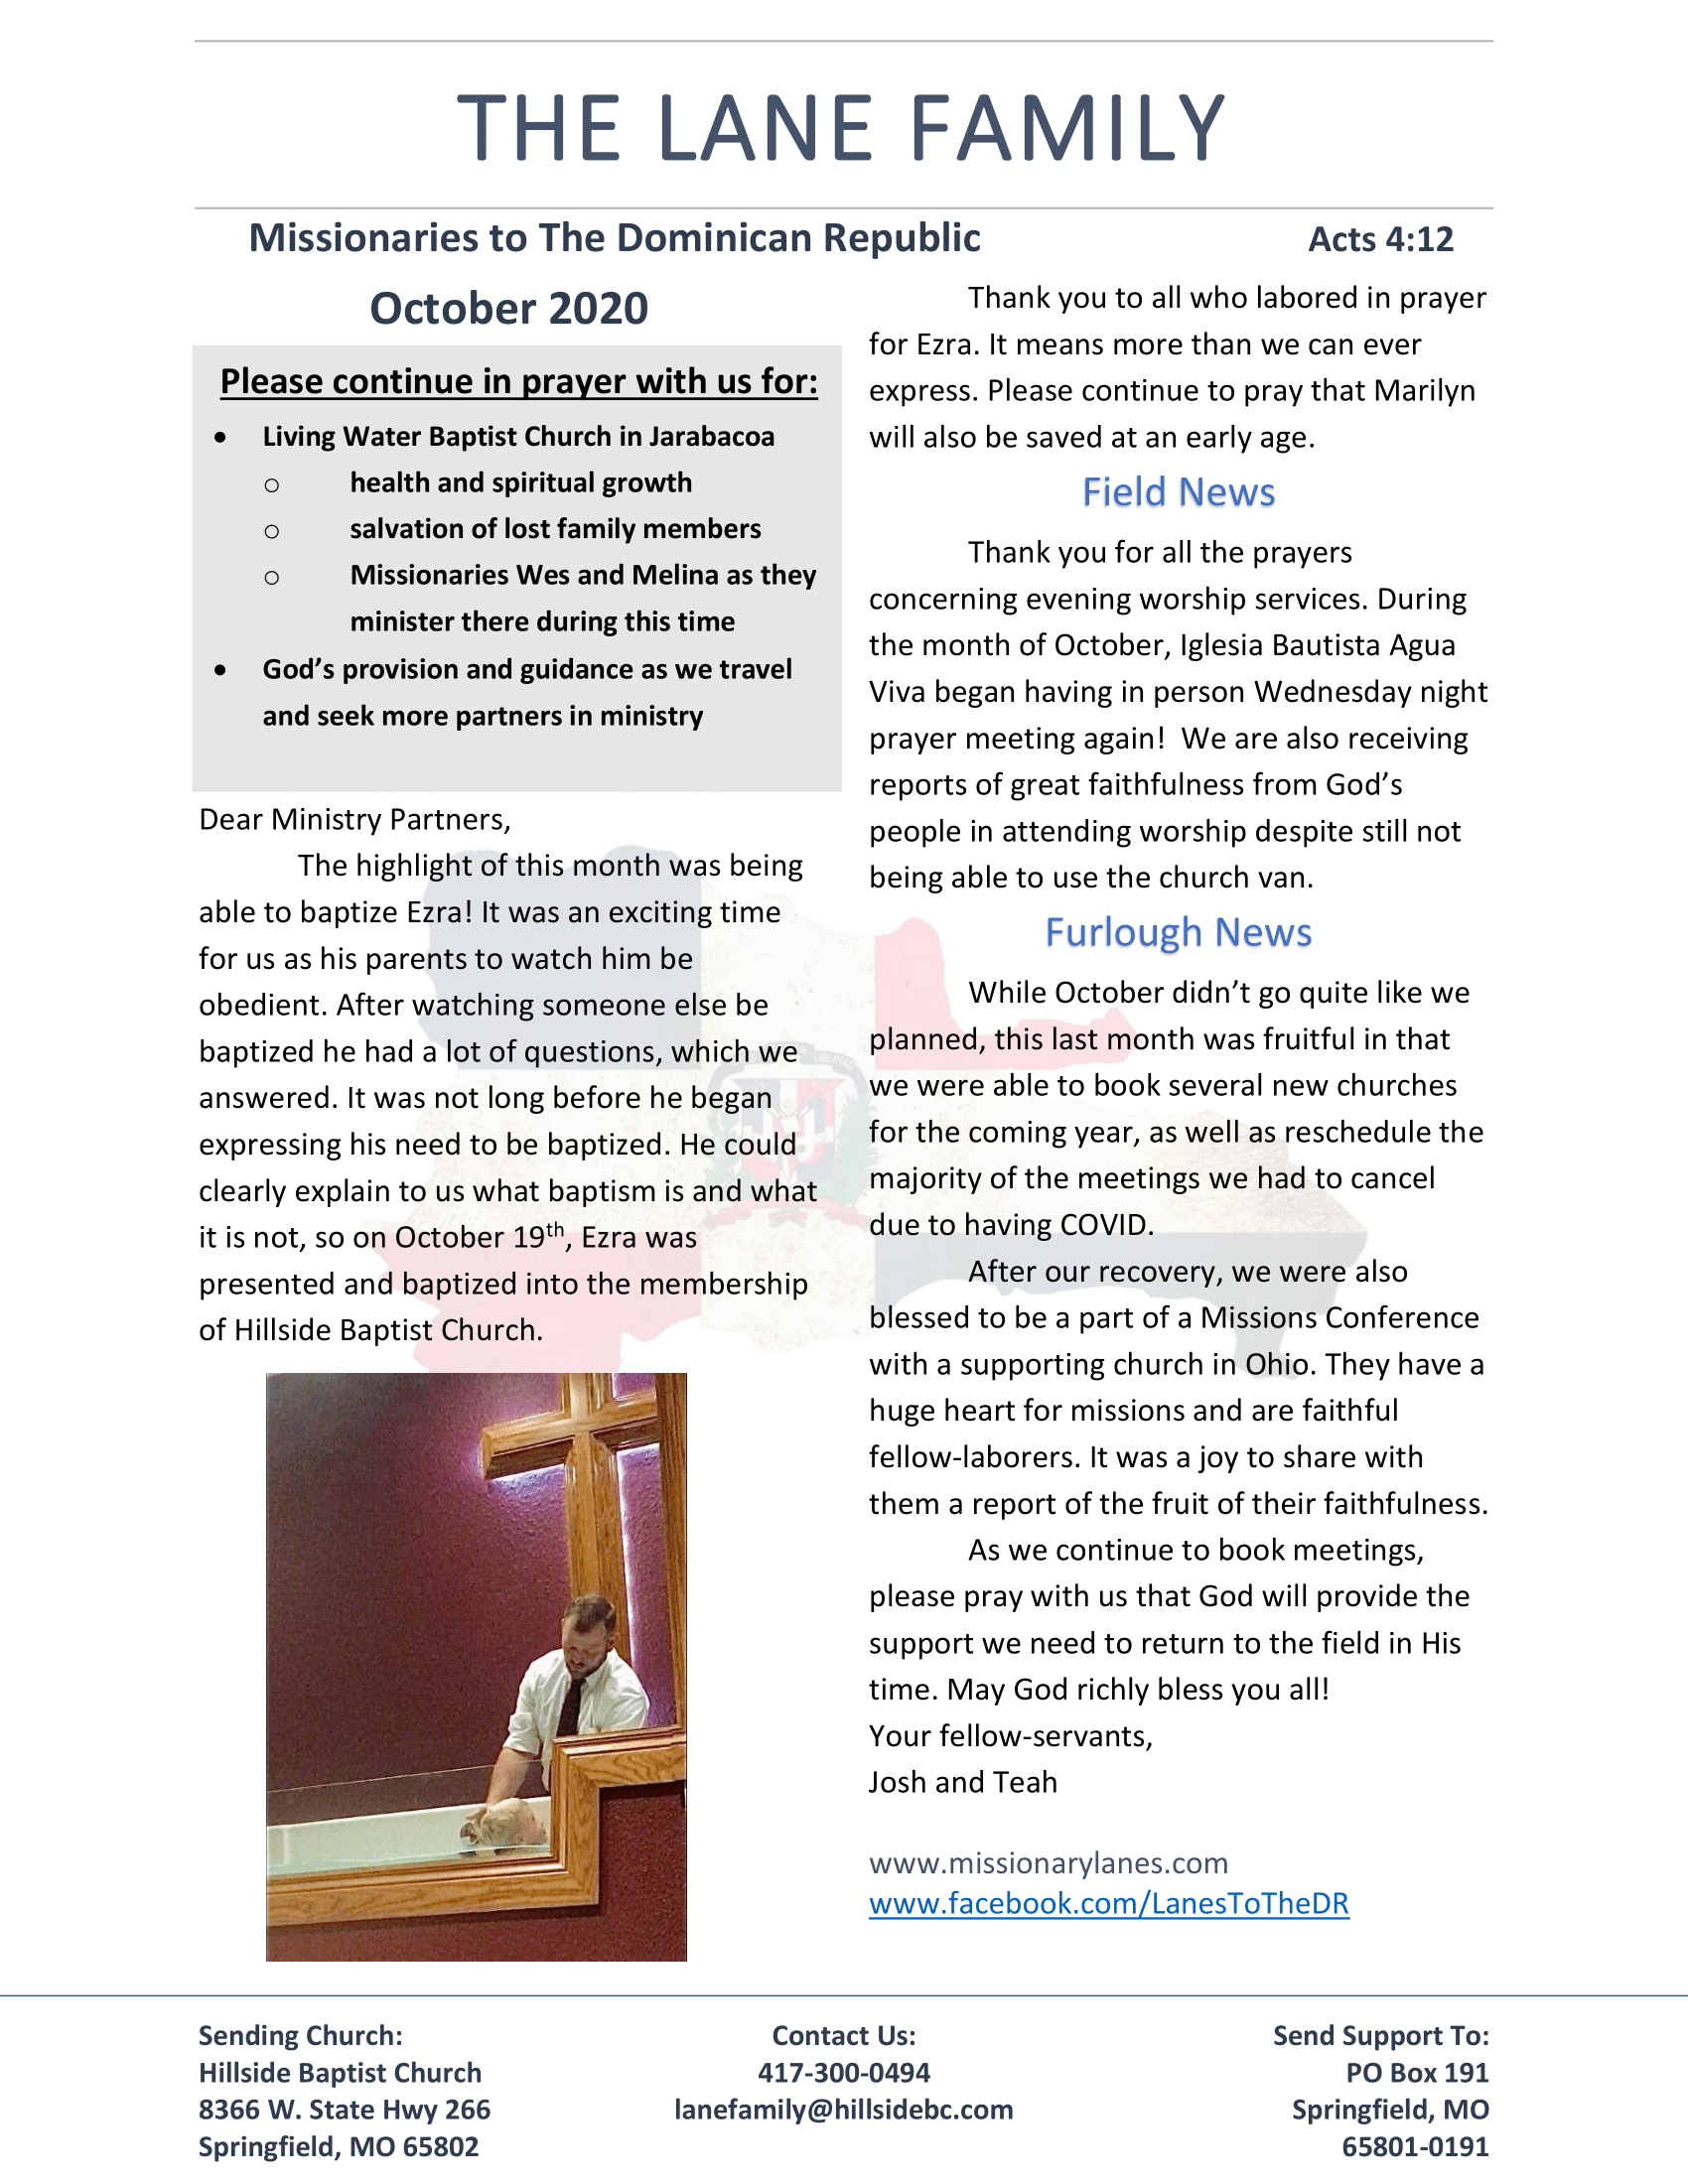 Prayer_Letter_2020_October-1